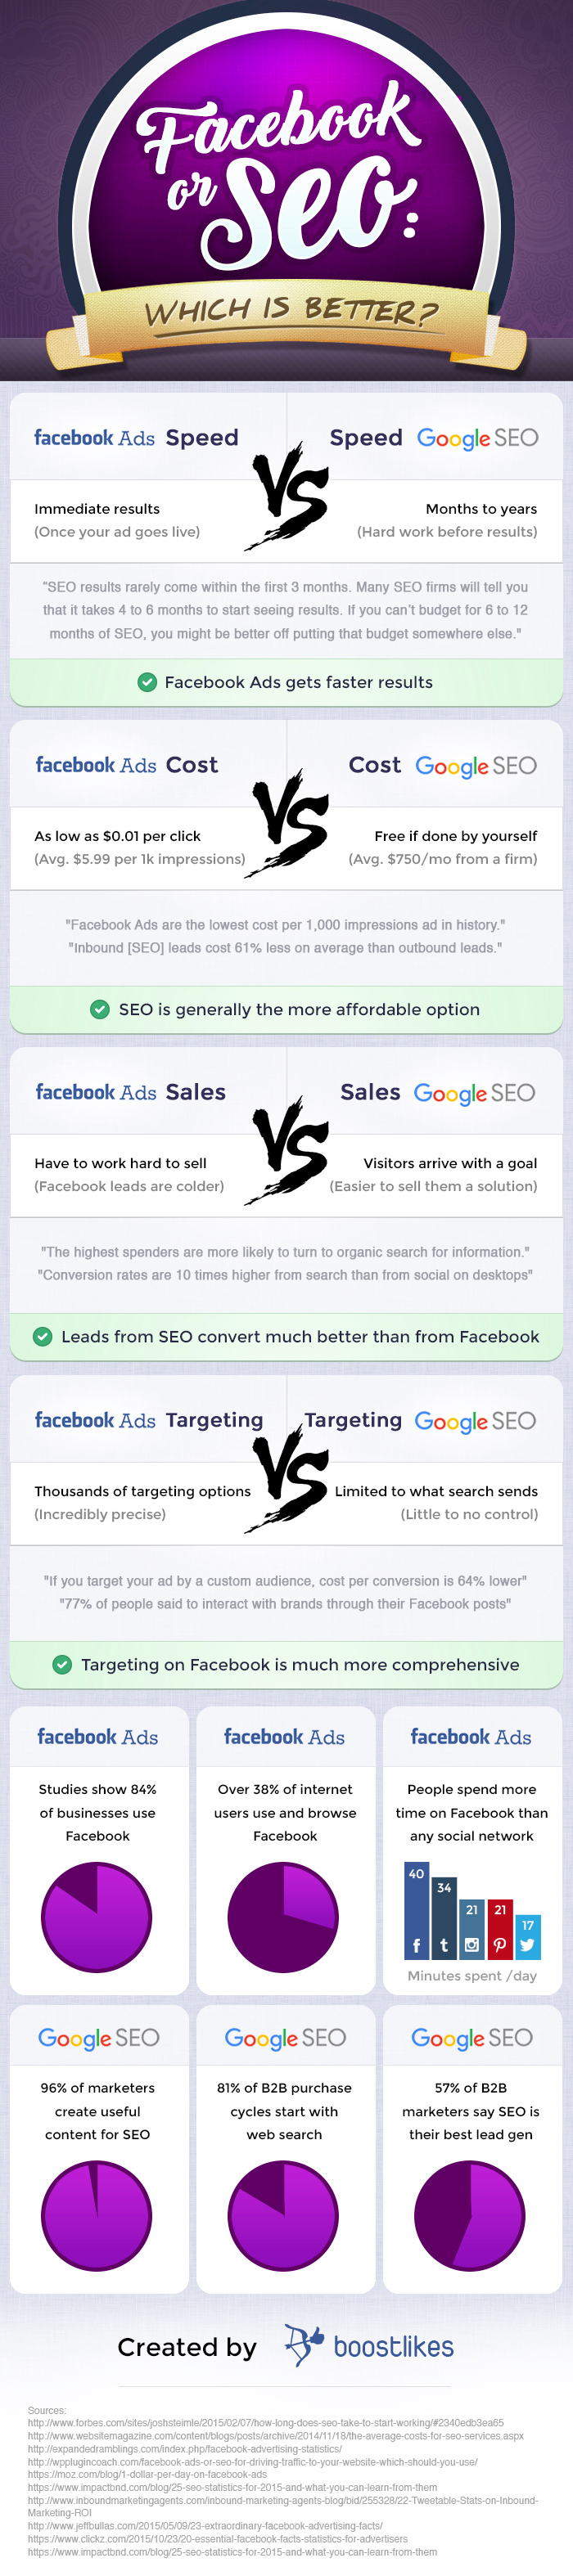 b2ap3_thumbnail_facebook-ads-or-seo-where-should-you-spend-your-time-money1.jpg